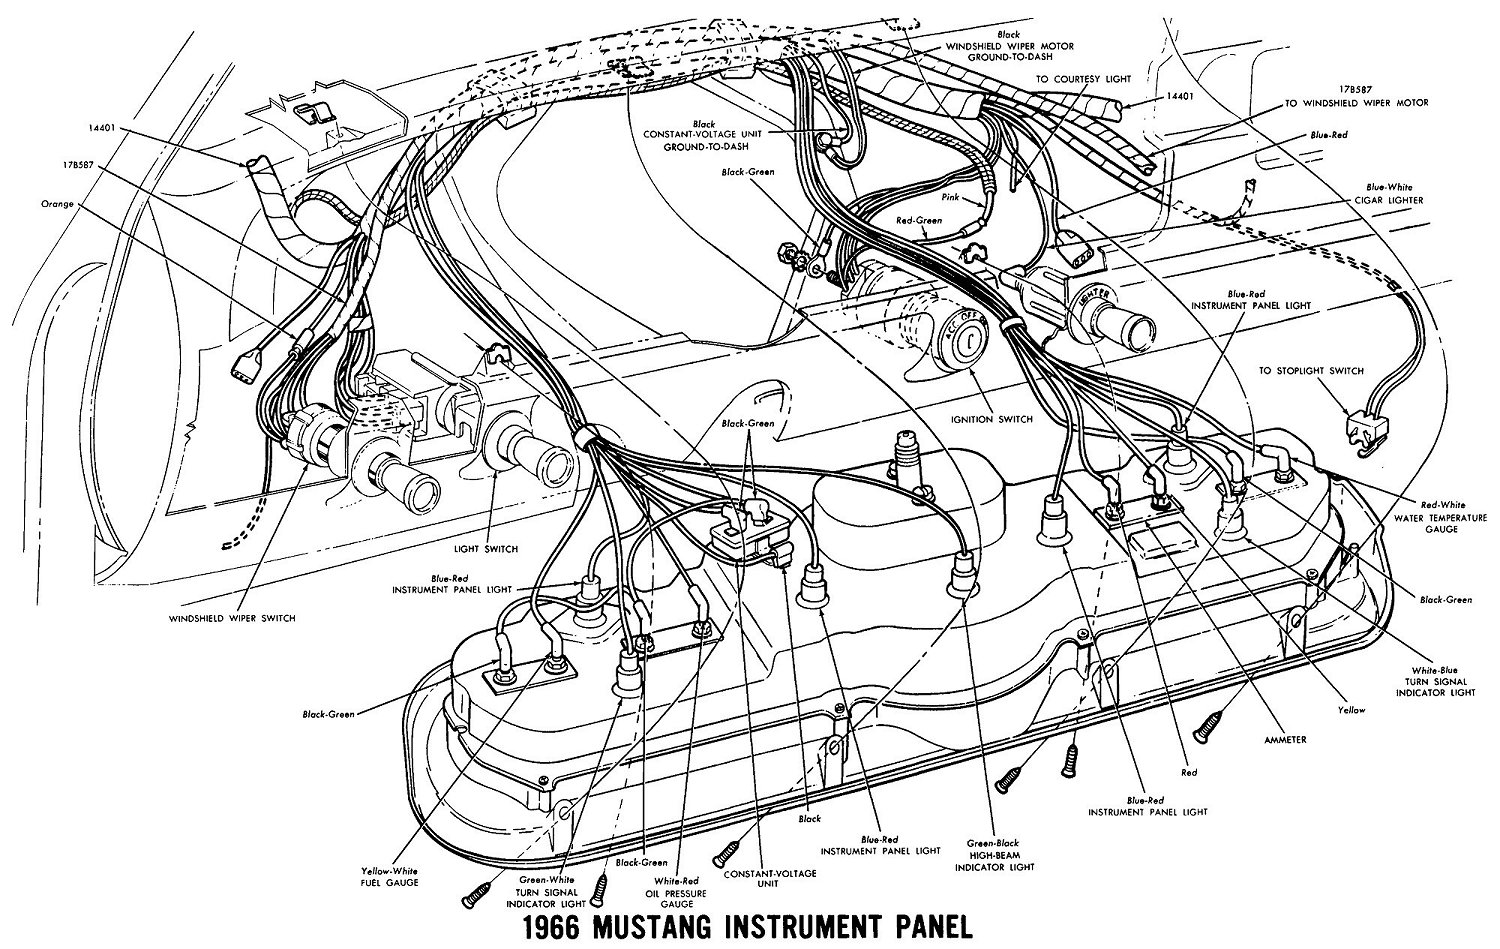 66instr vintage mustang wiring diagrams wiring diagram for 69 mustang at gsmportal.co